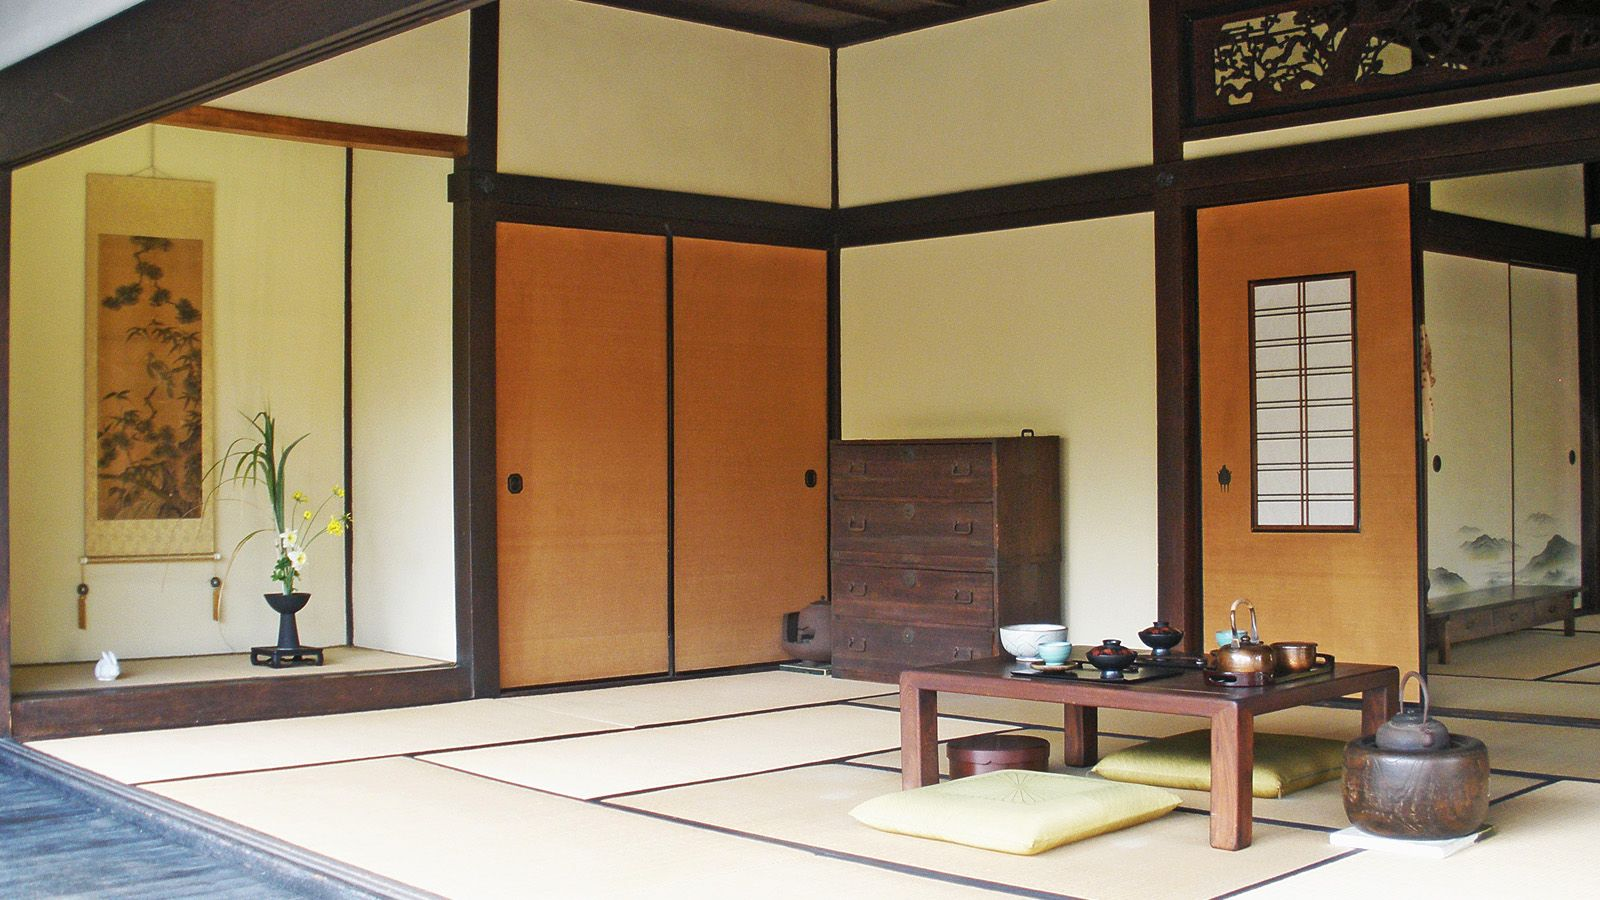 Traditional Japanese Room By Fritters Tra đạo Thiết Kế Thiết